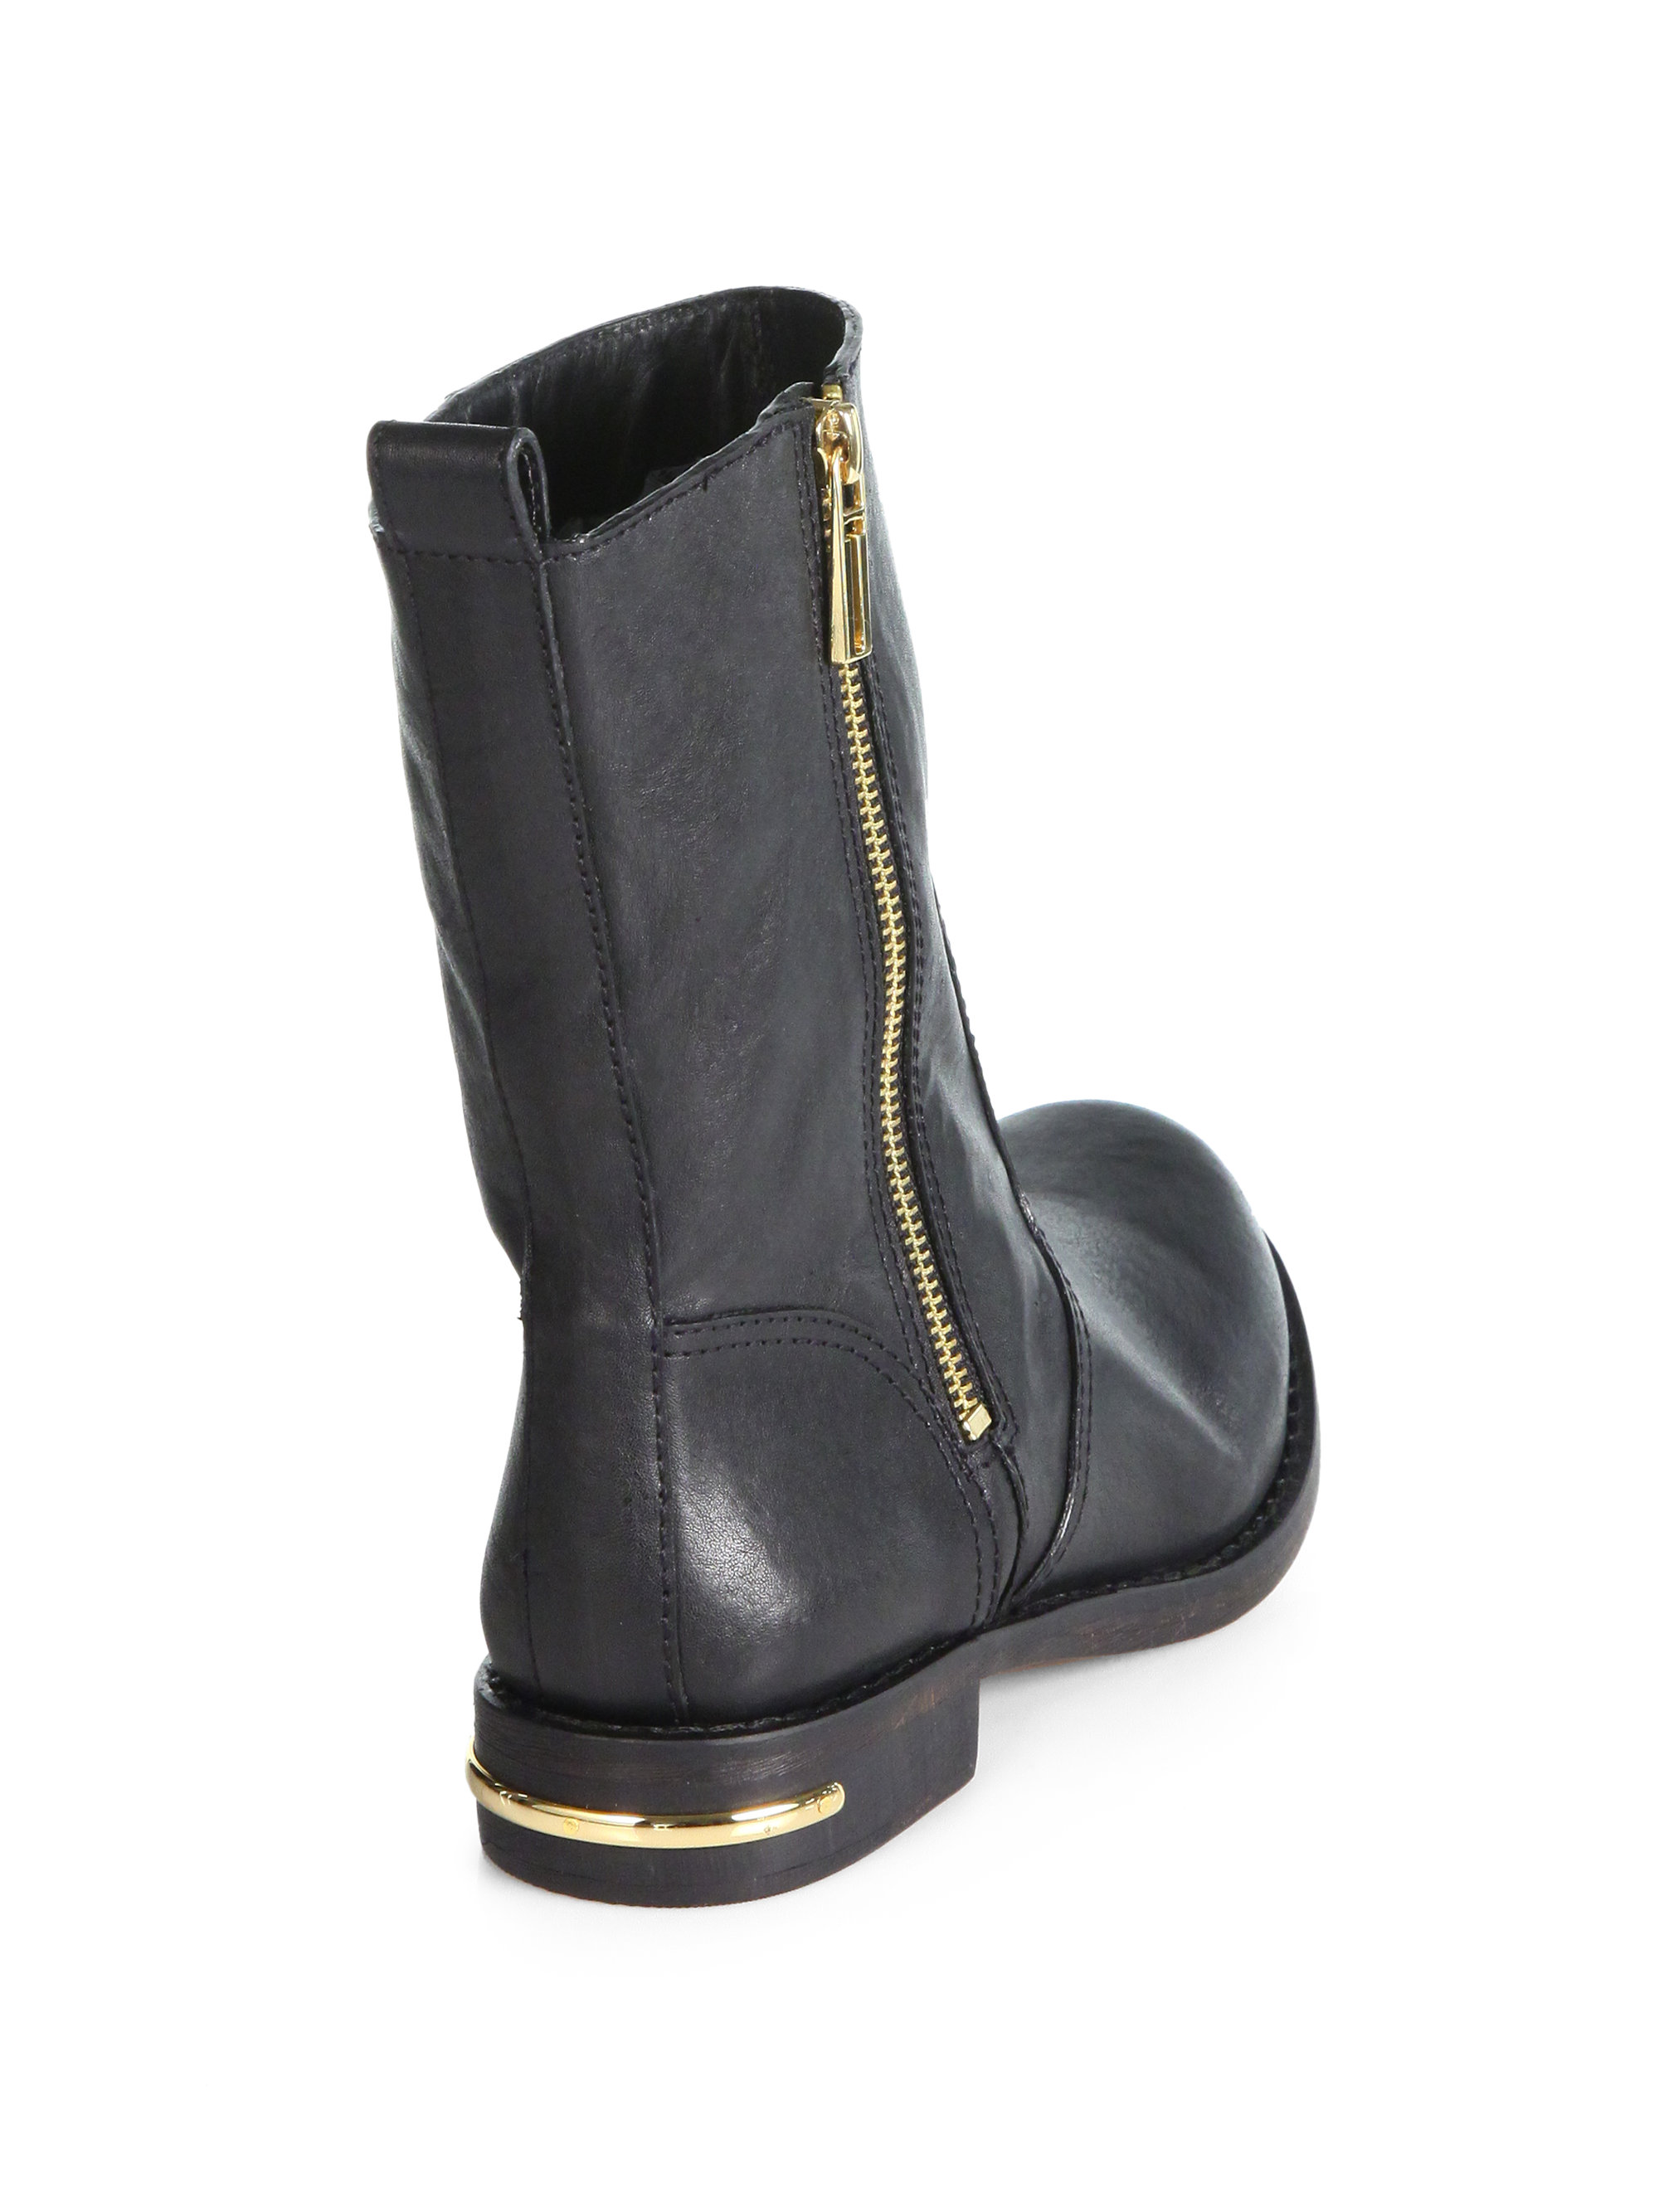 8550dafac407 Lyst - Tory Burch Elyse Leather Midcalf Boots in Black